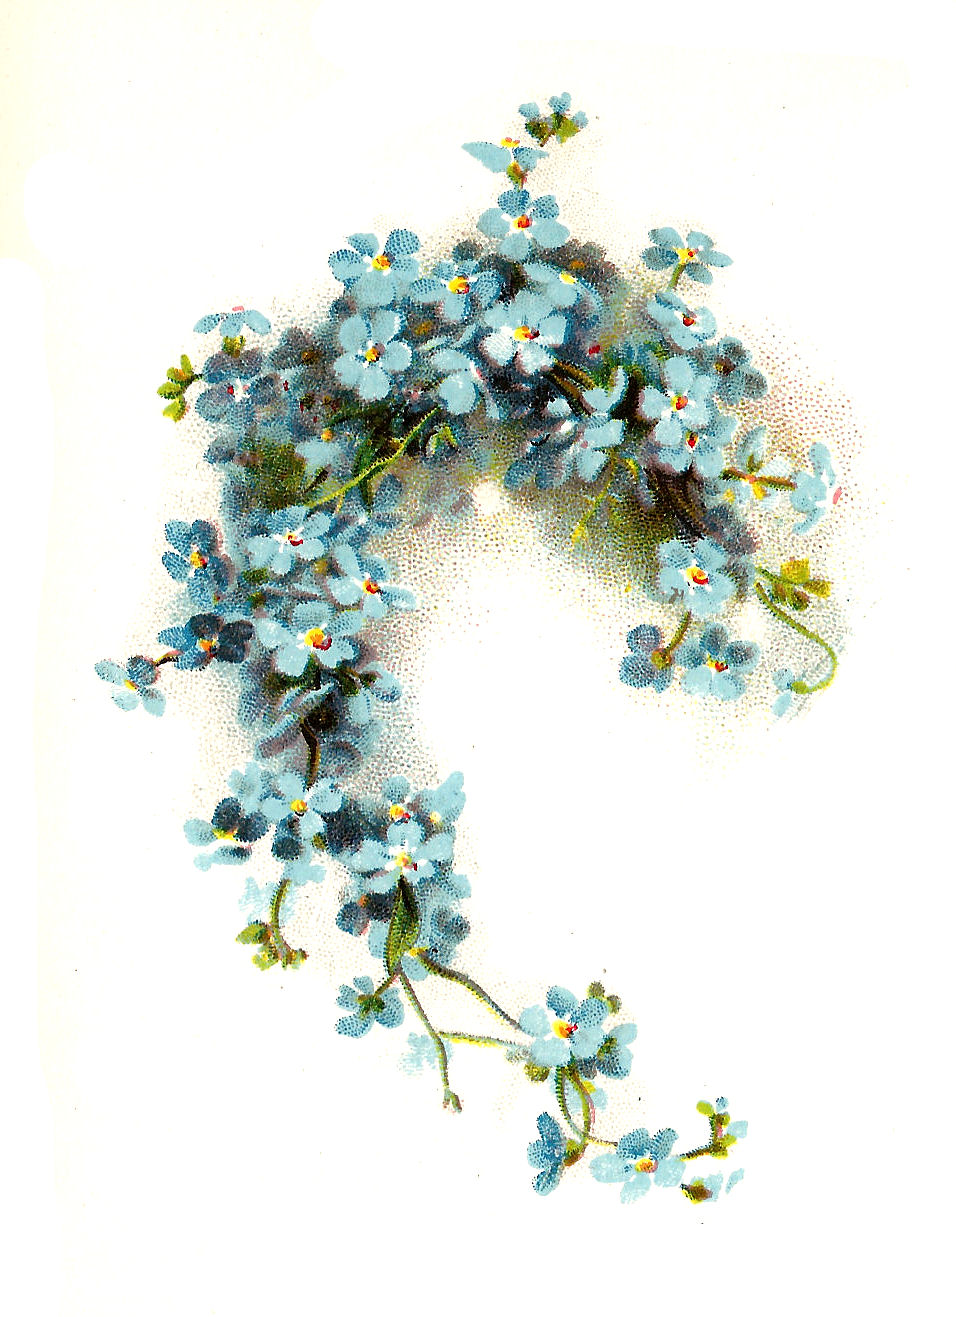 Flower Clip Art: Blue ForgetMeNot Flower Graphic from Wedding Book